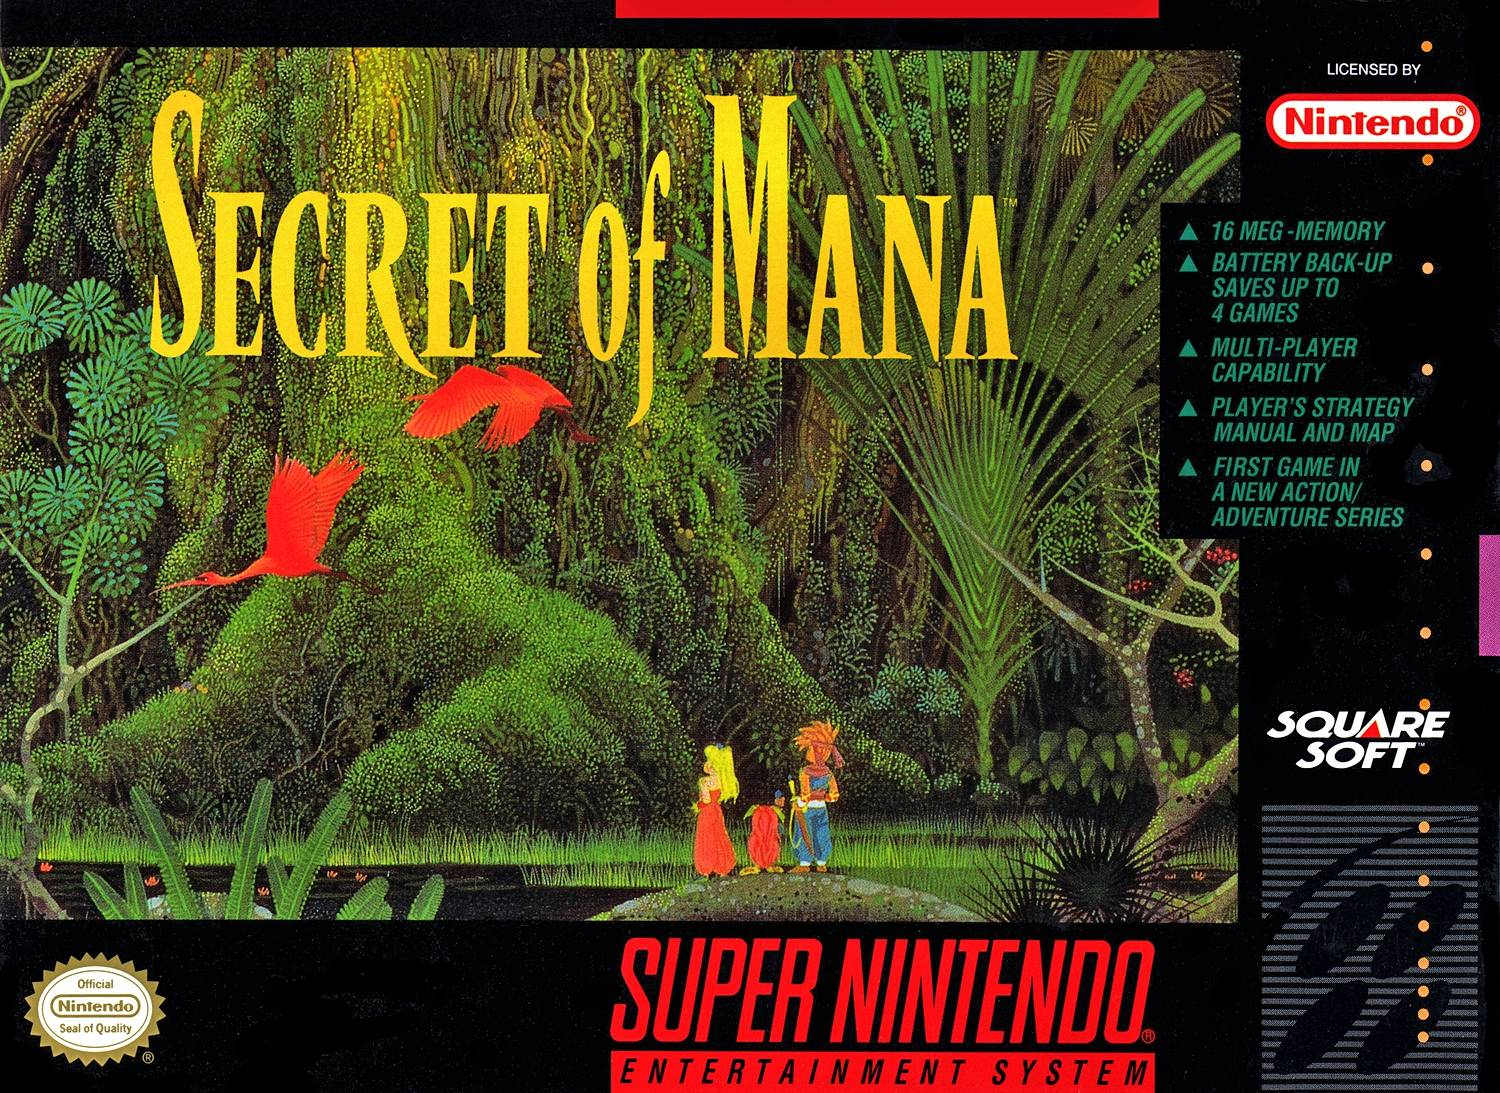 Secret-of-Mana capa_2